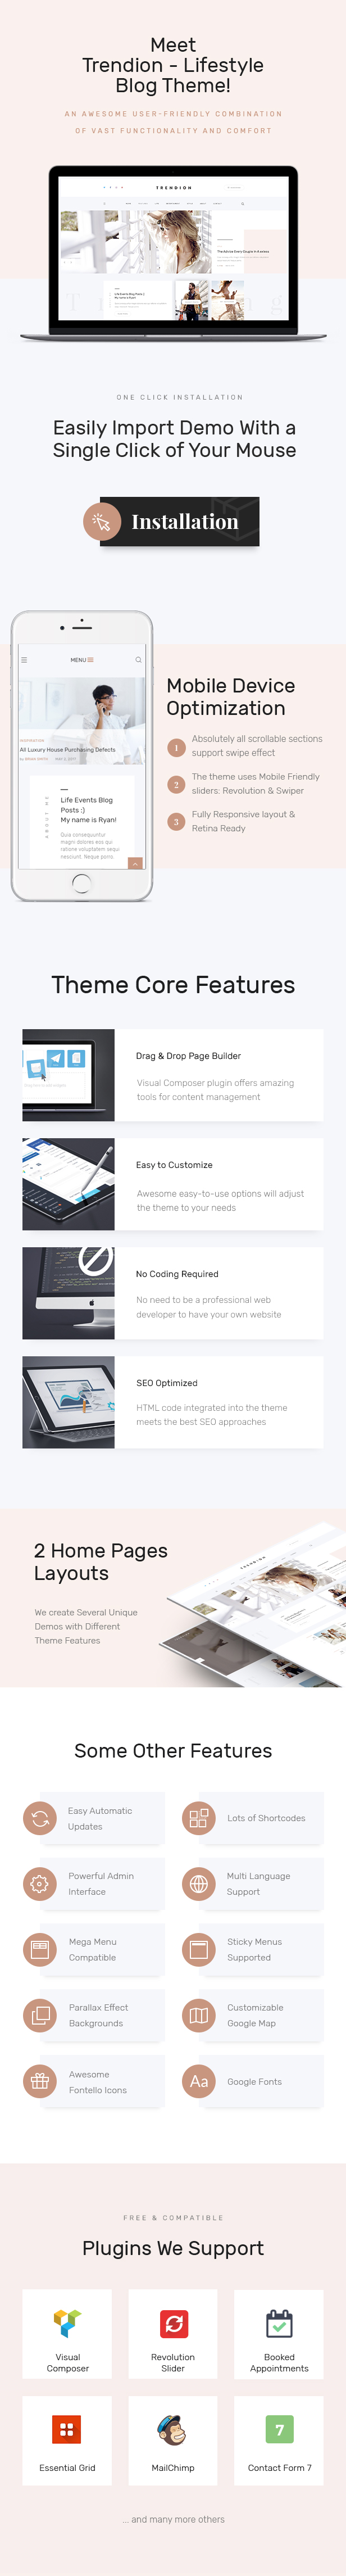 Trendion | A Personal Lifestyle Blog and Magazine WordPress Theme - 1